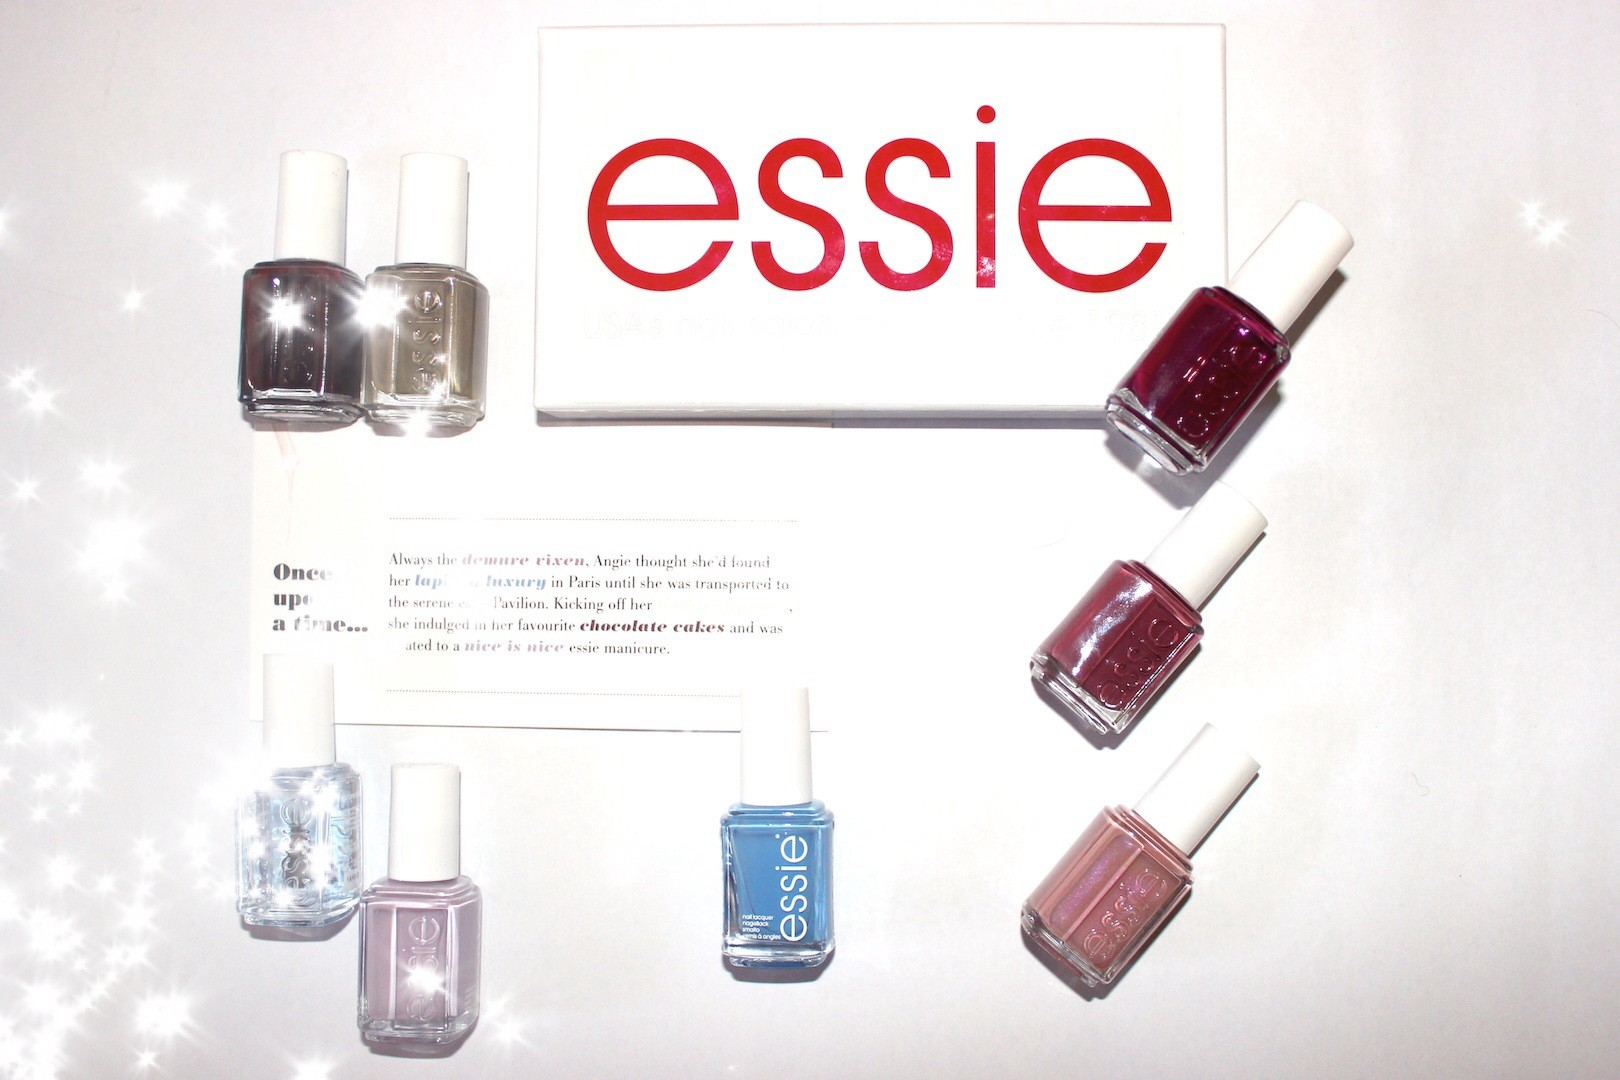 essie, essienz, peadpr, jessica mathias, jen mann, l'orealnz, lorealnz, loreal essie nz, nails, nail polish, brendan urlich, beauty blog nz, fashion blog nz, style blog nz, beauty media nz, fashion media nz, angie fredatovich, gurlinterrupted, fashion, beauty